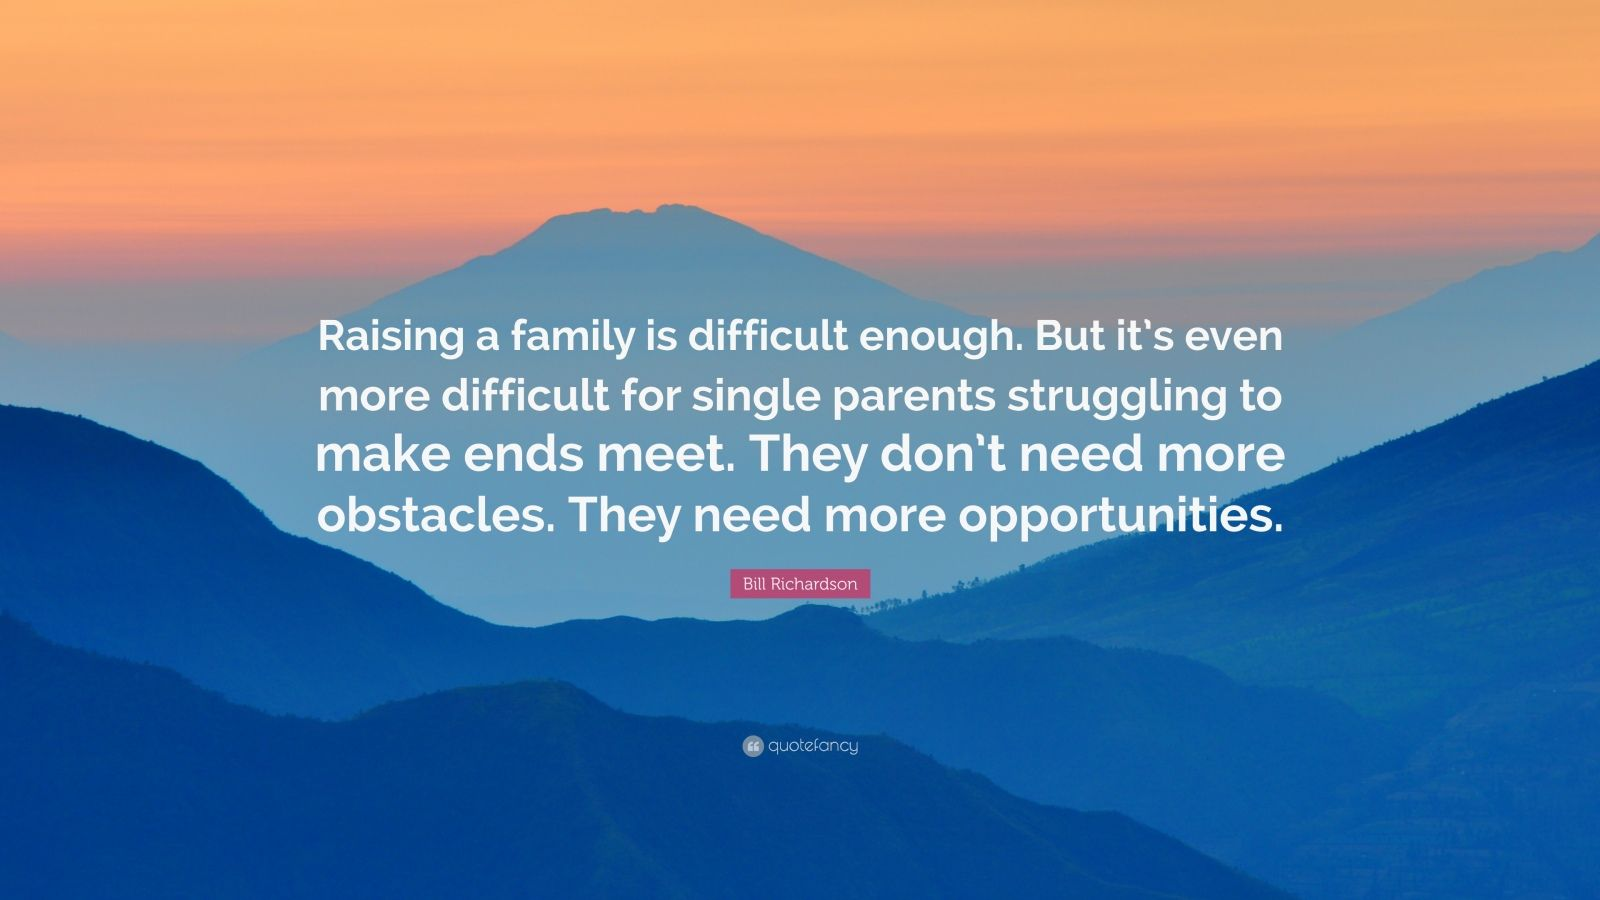 33 Great Quotes About Family: Bill Richardson Quotes (33 Wallpapers)